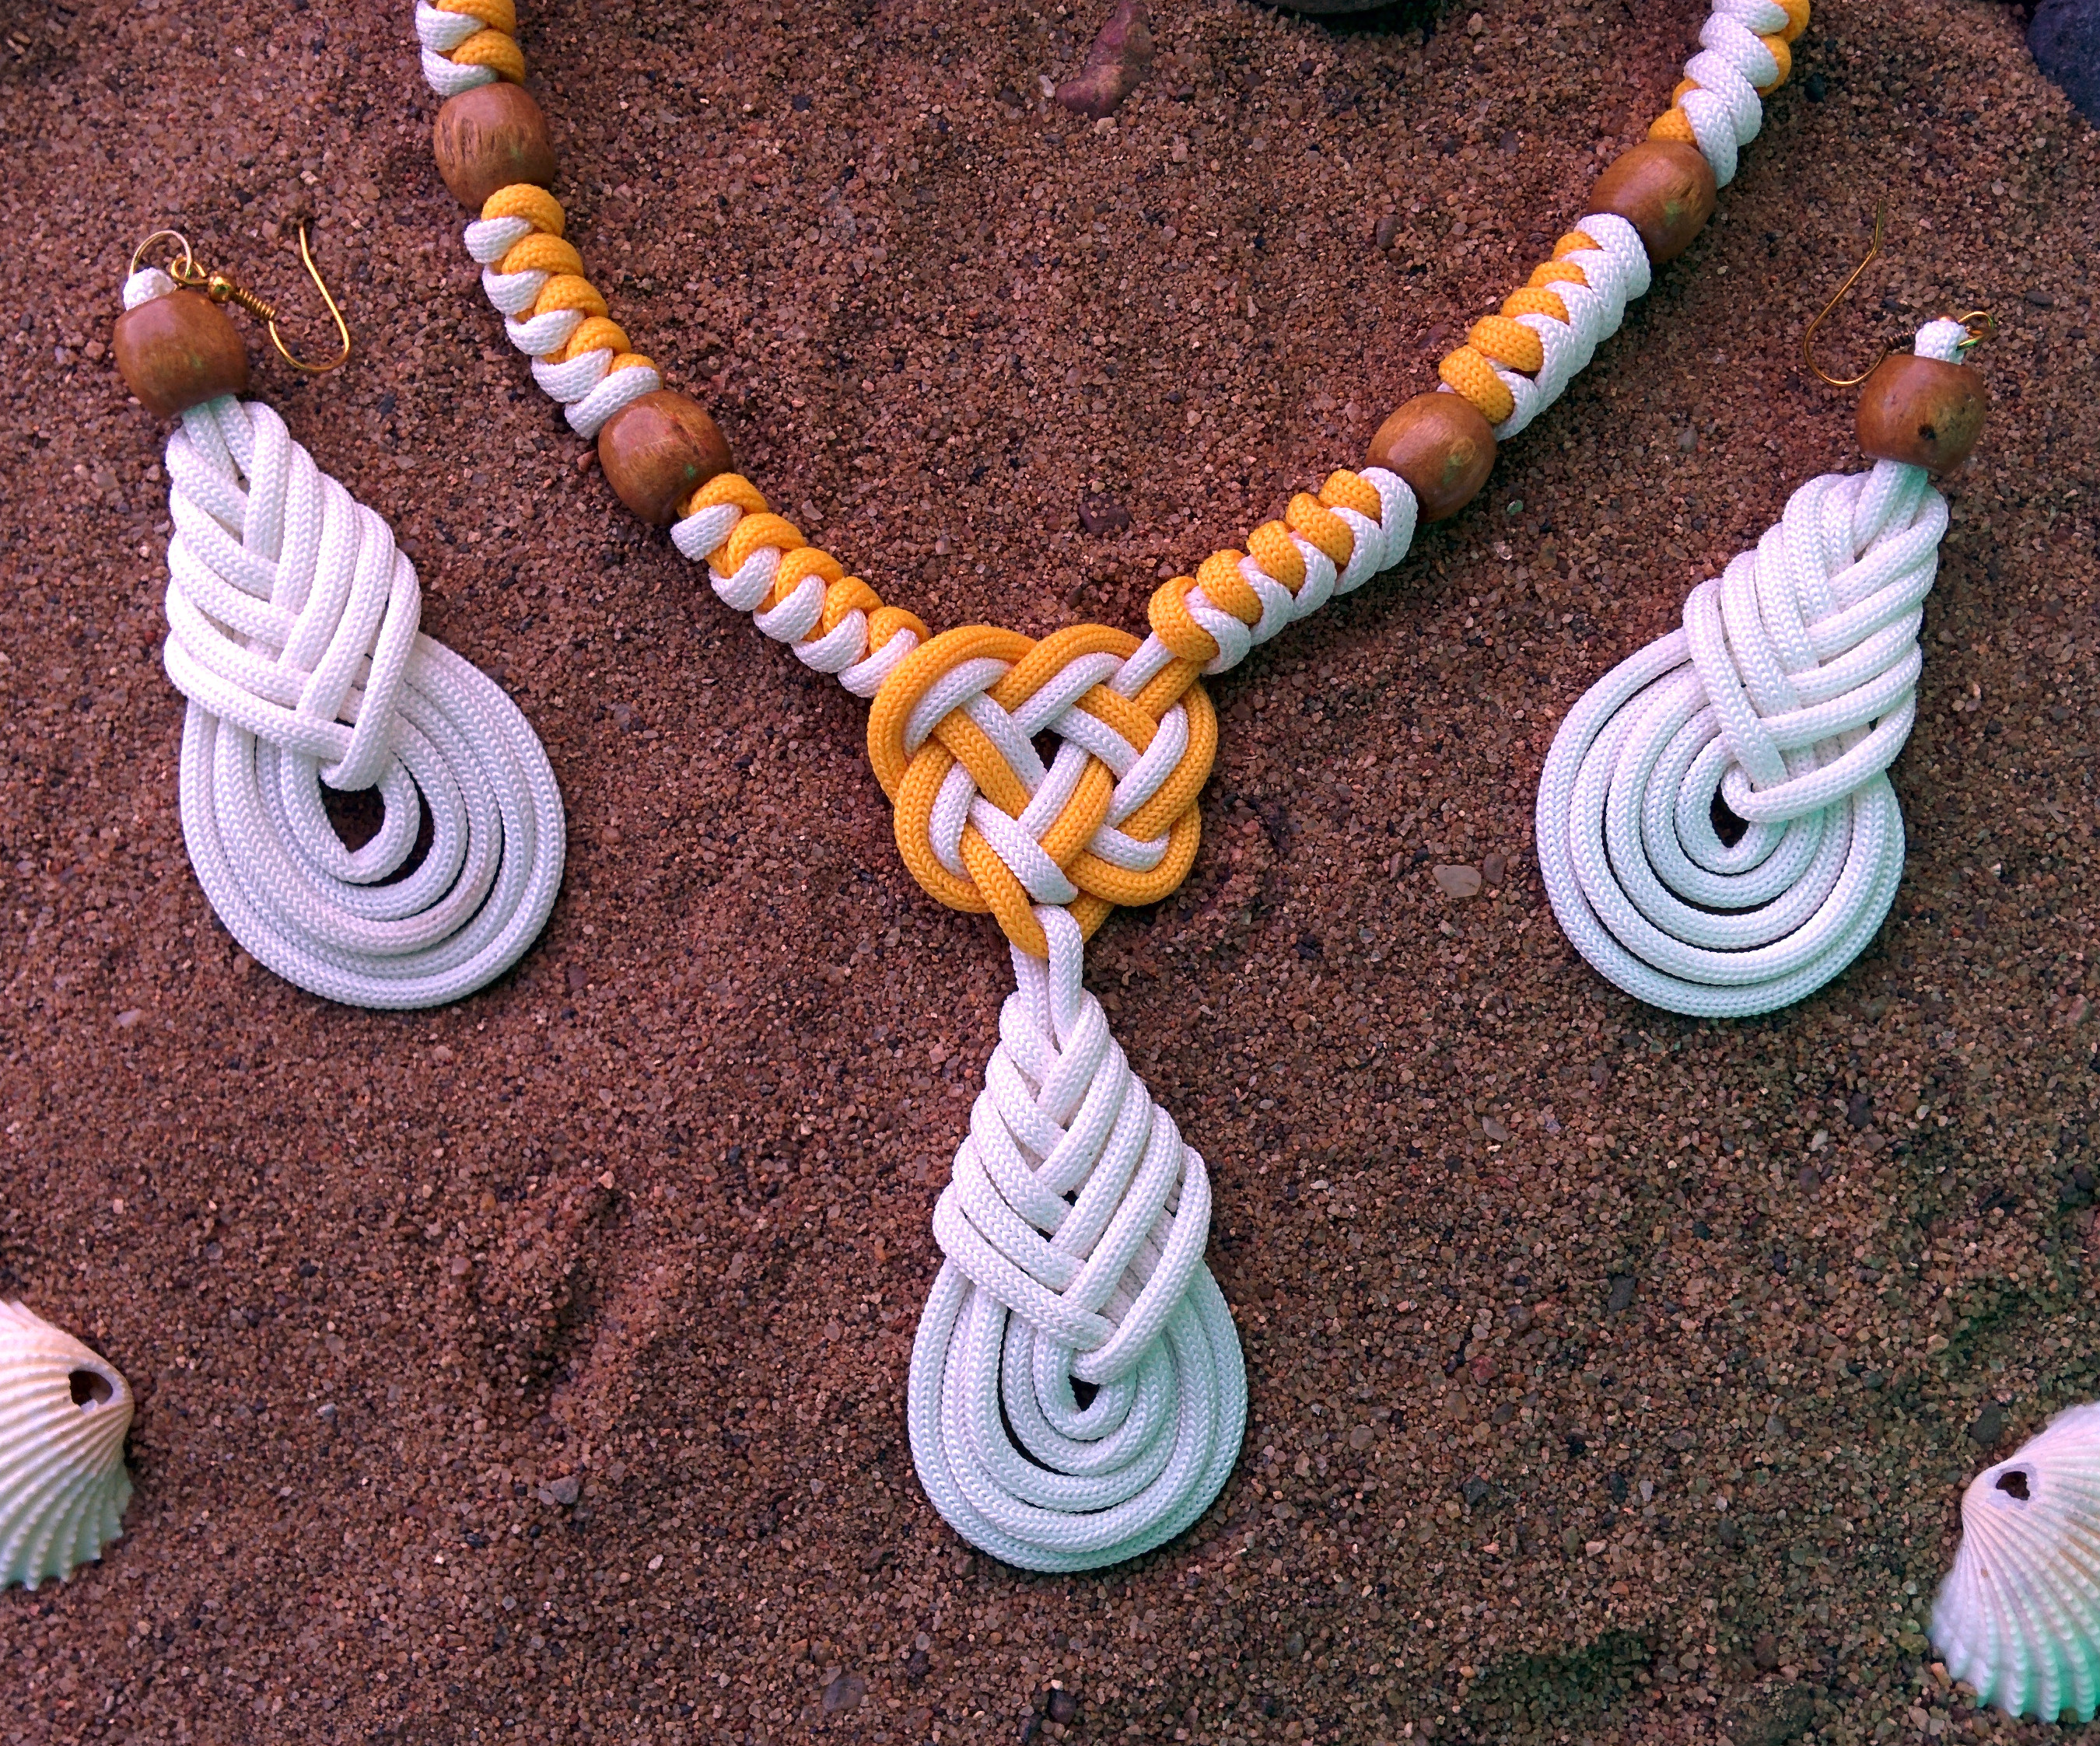 Beachwear Necklace with earrings made using paracord